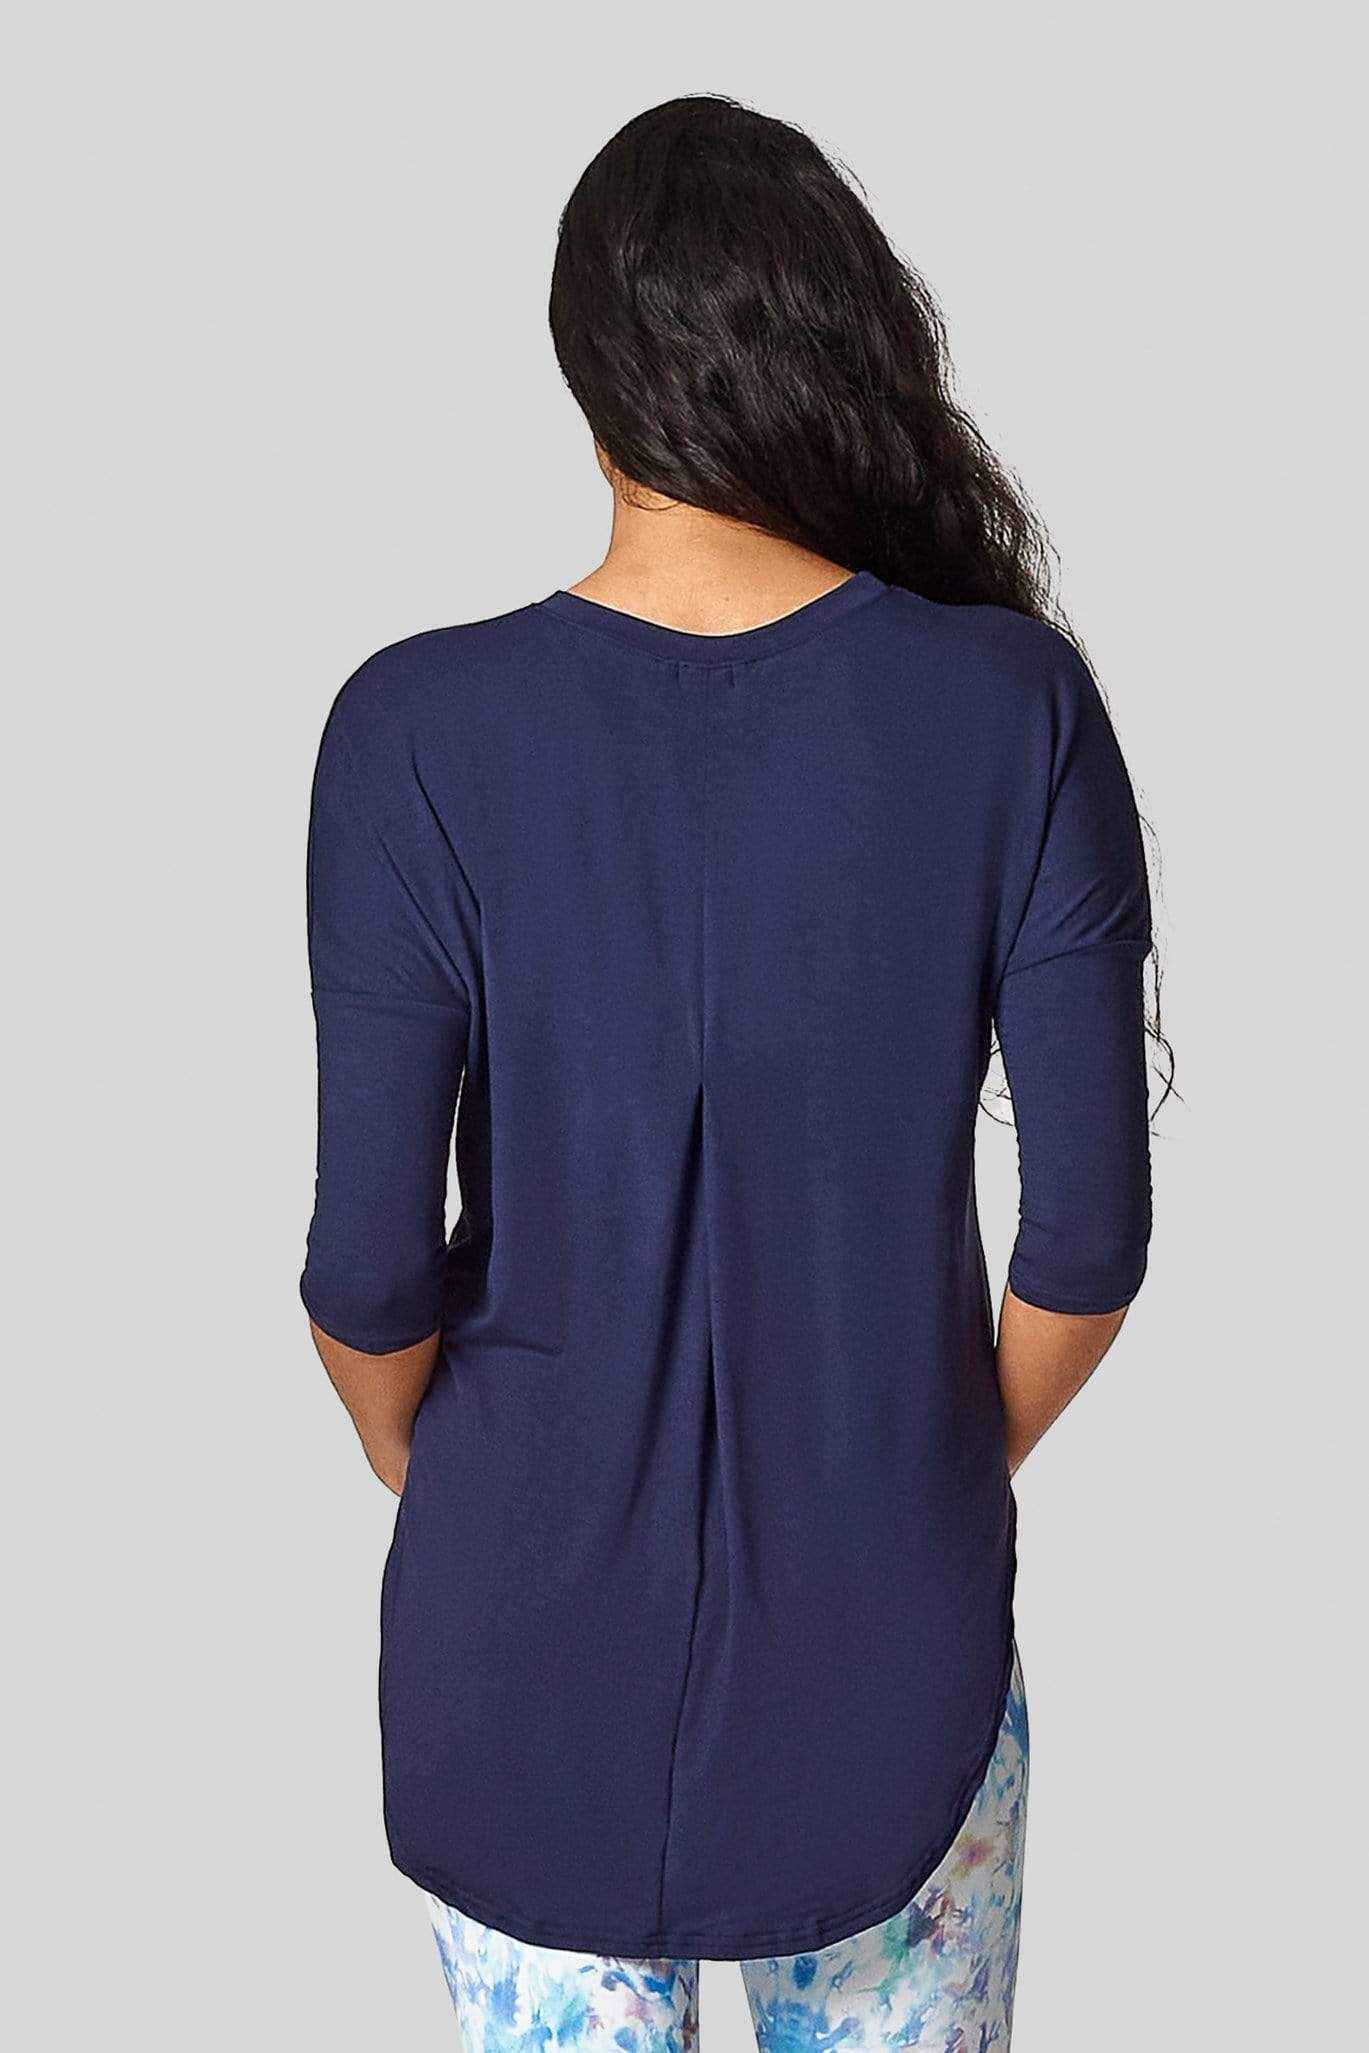 A woman's back faces the camera and she wears a blue 3/4 length tee shirt with a pleat in the back.